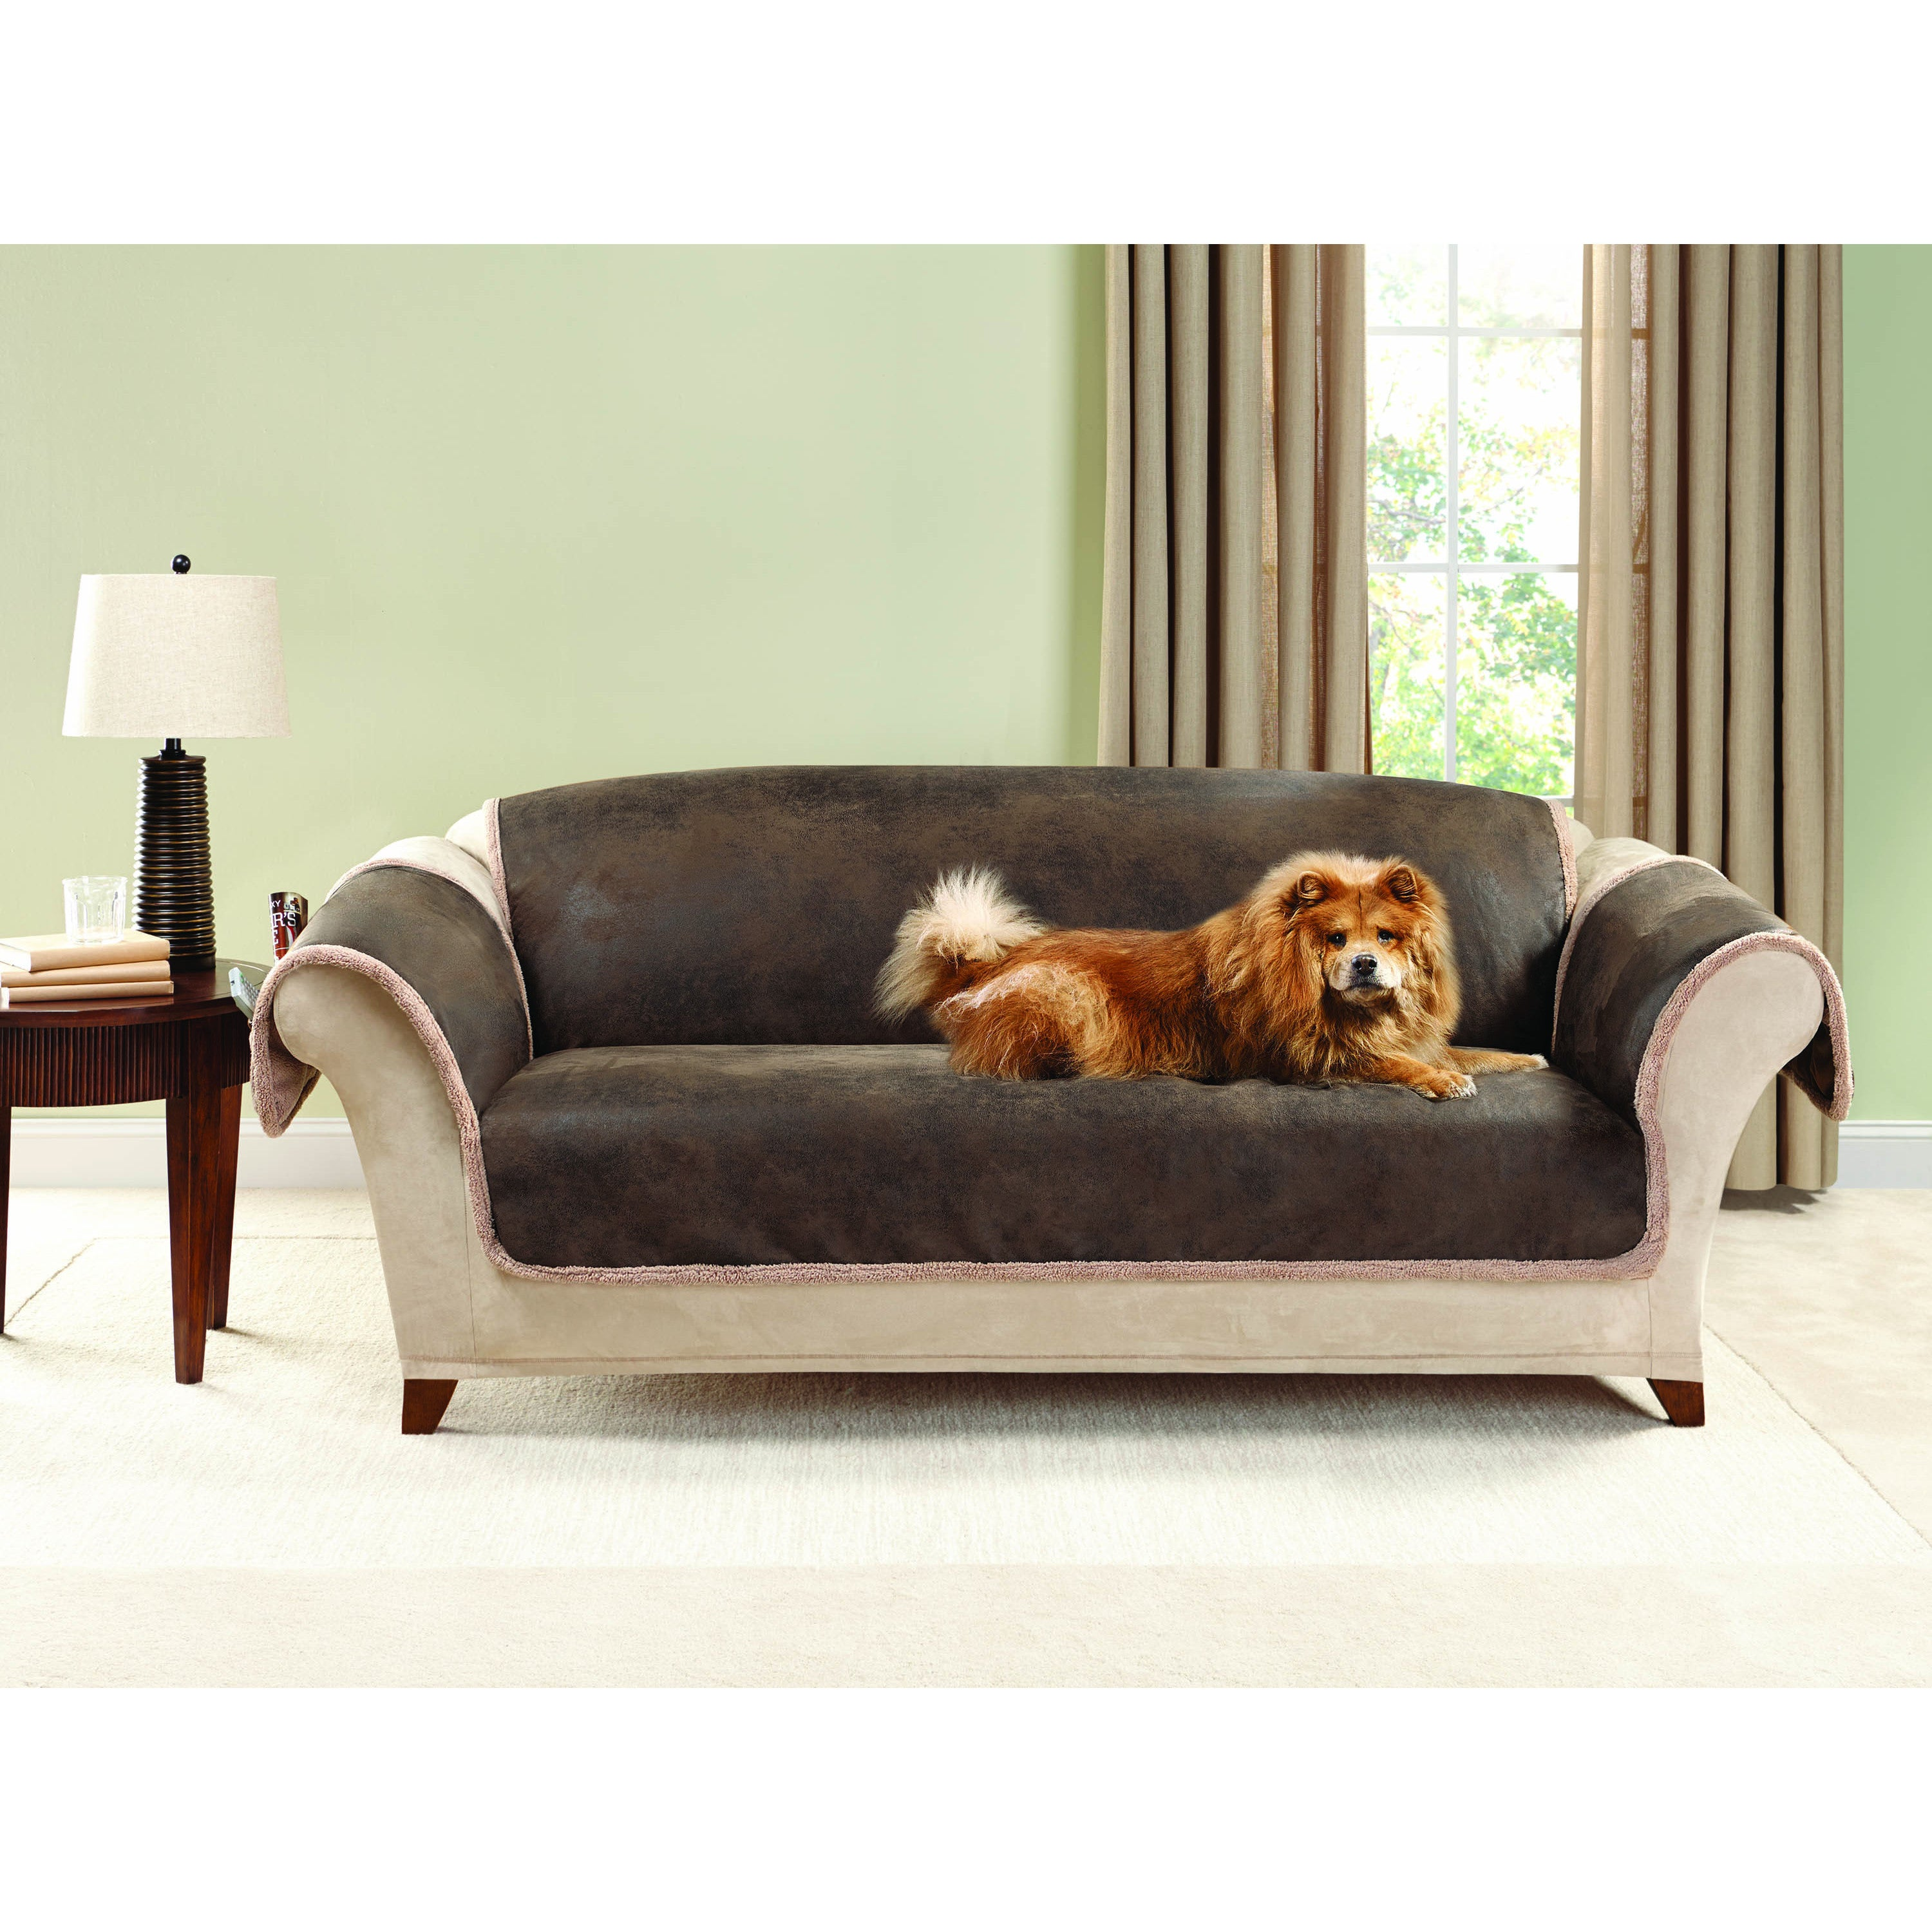 Sure Fit Vintage Leather Sofa Furniture Protector (Brown)...